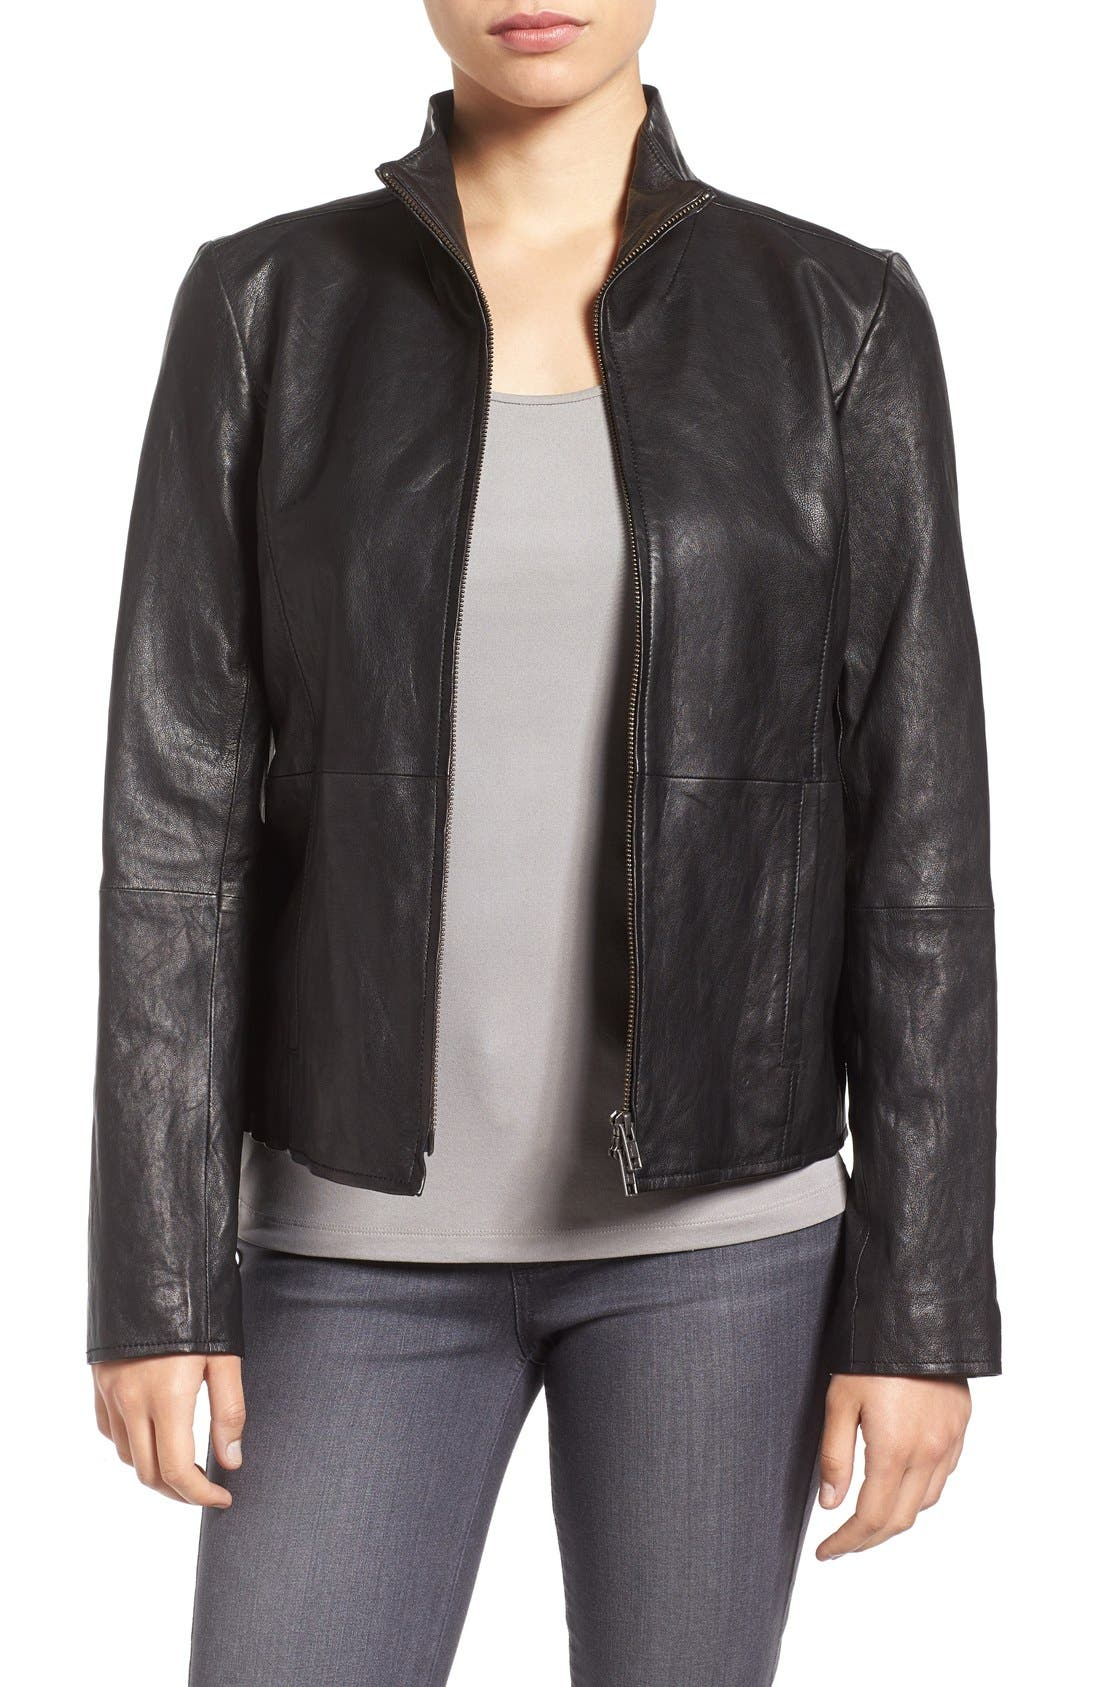 Rumpled Luxe Leather Stand Collar Jacket,                         Main,                         color, Black